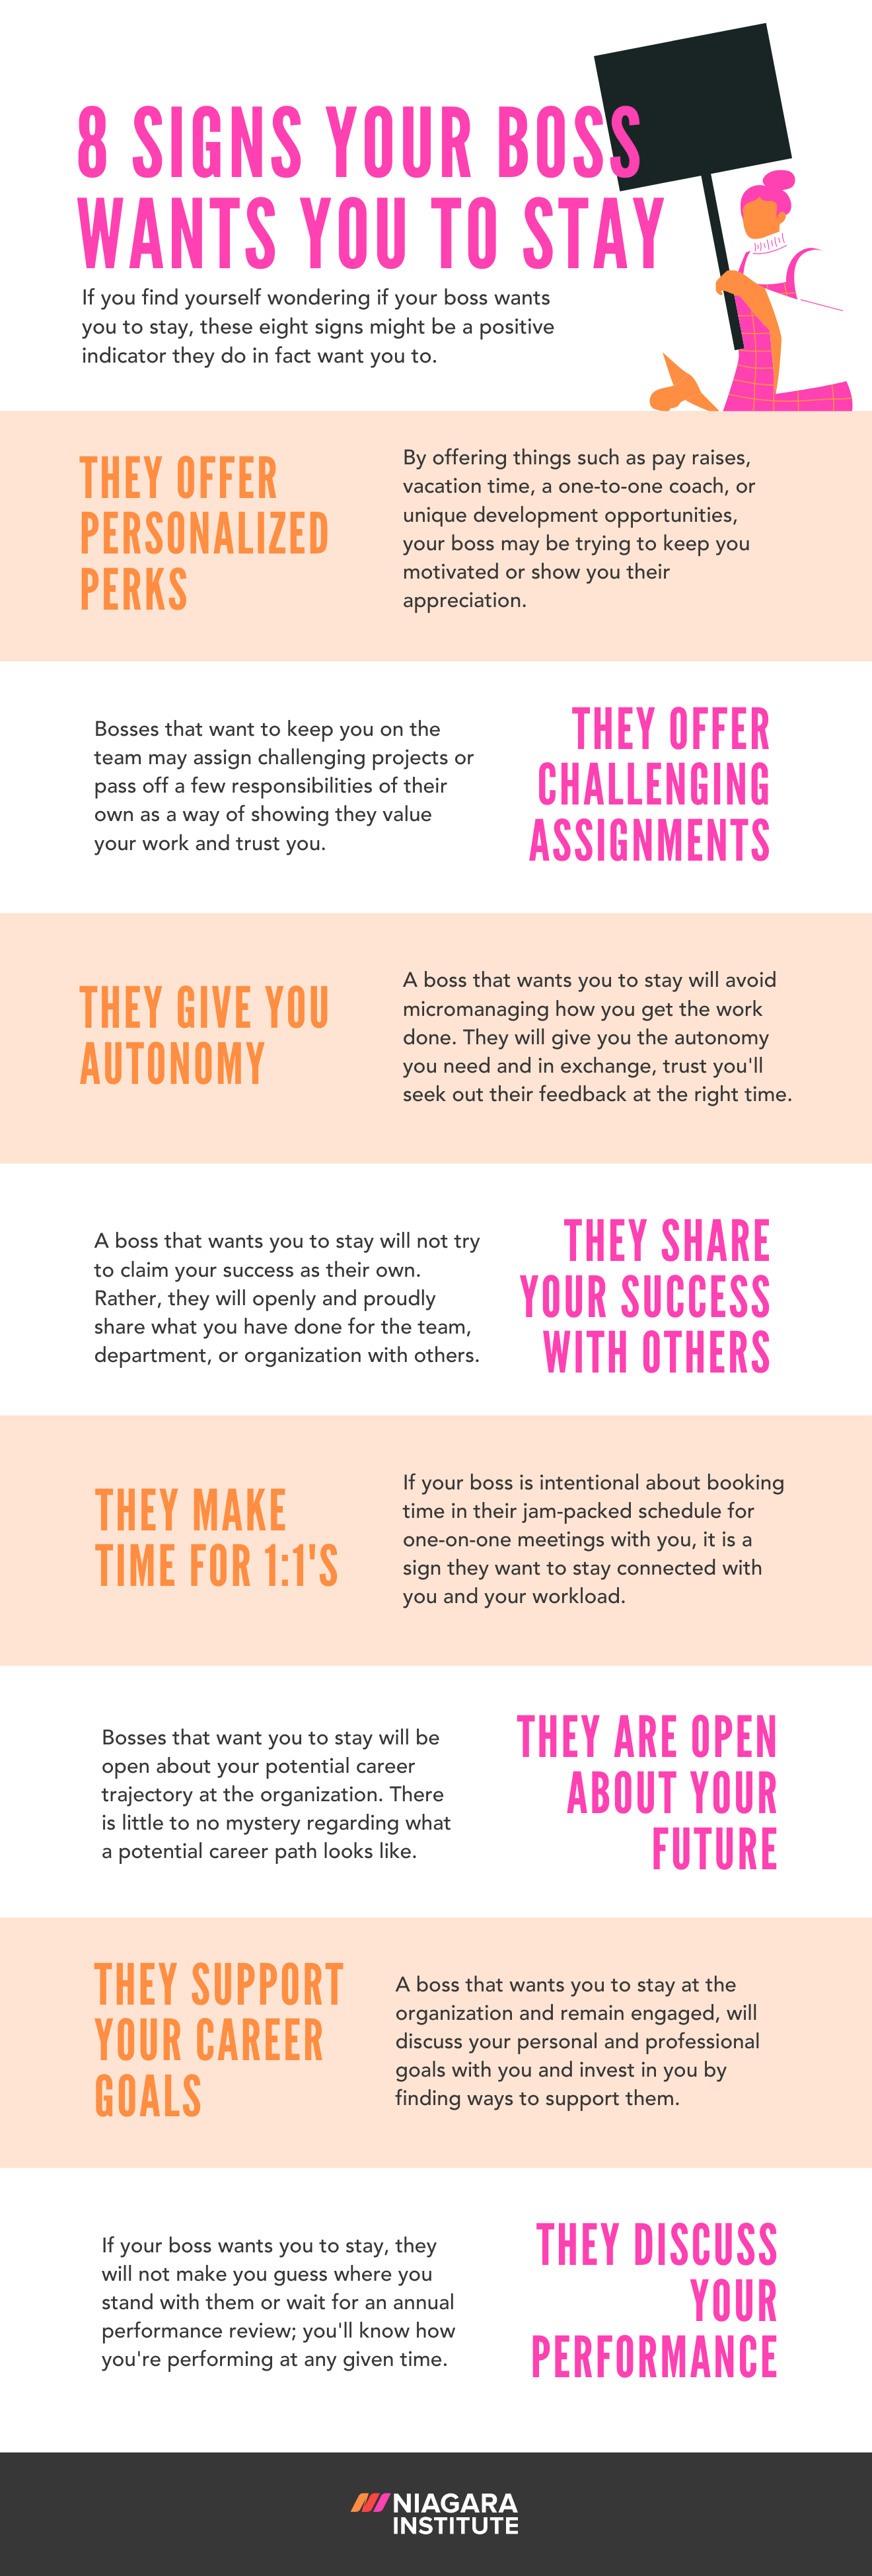 8 Signs Your Boss Wants You to Stay Niagara Institute Infographic